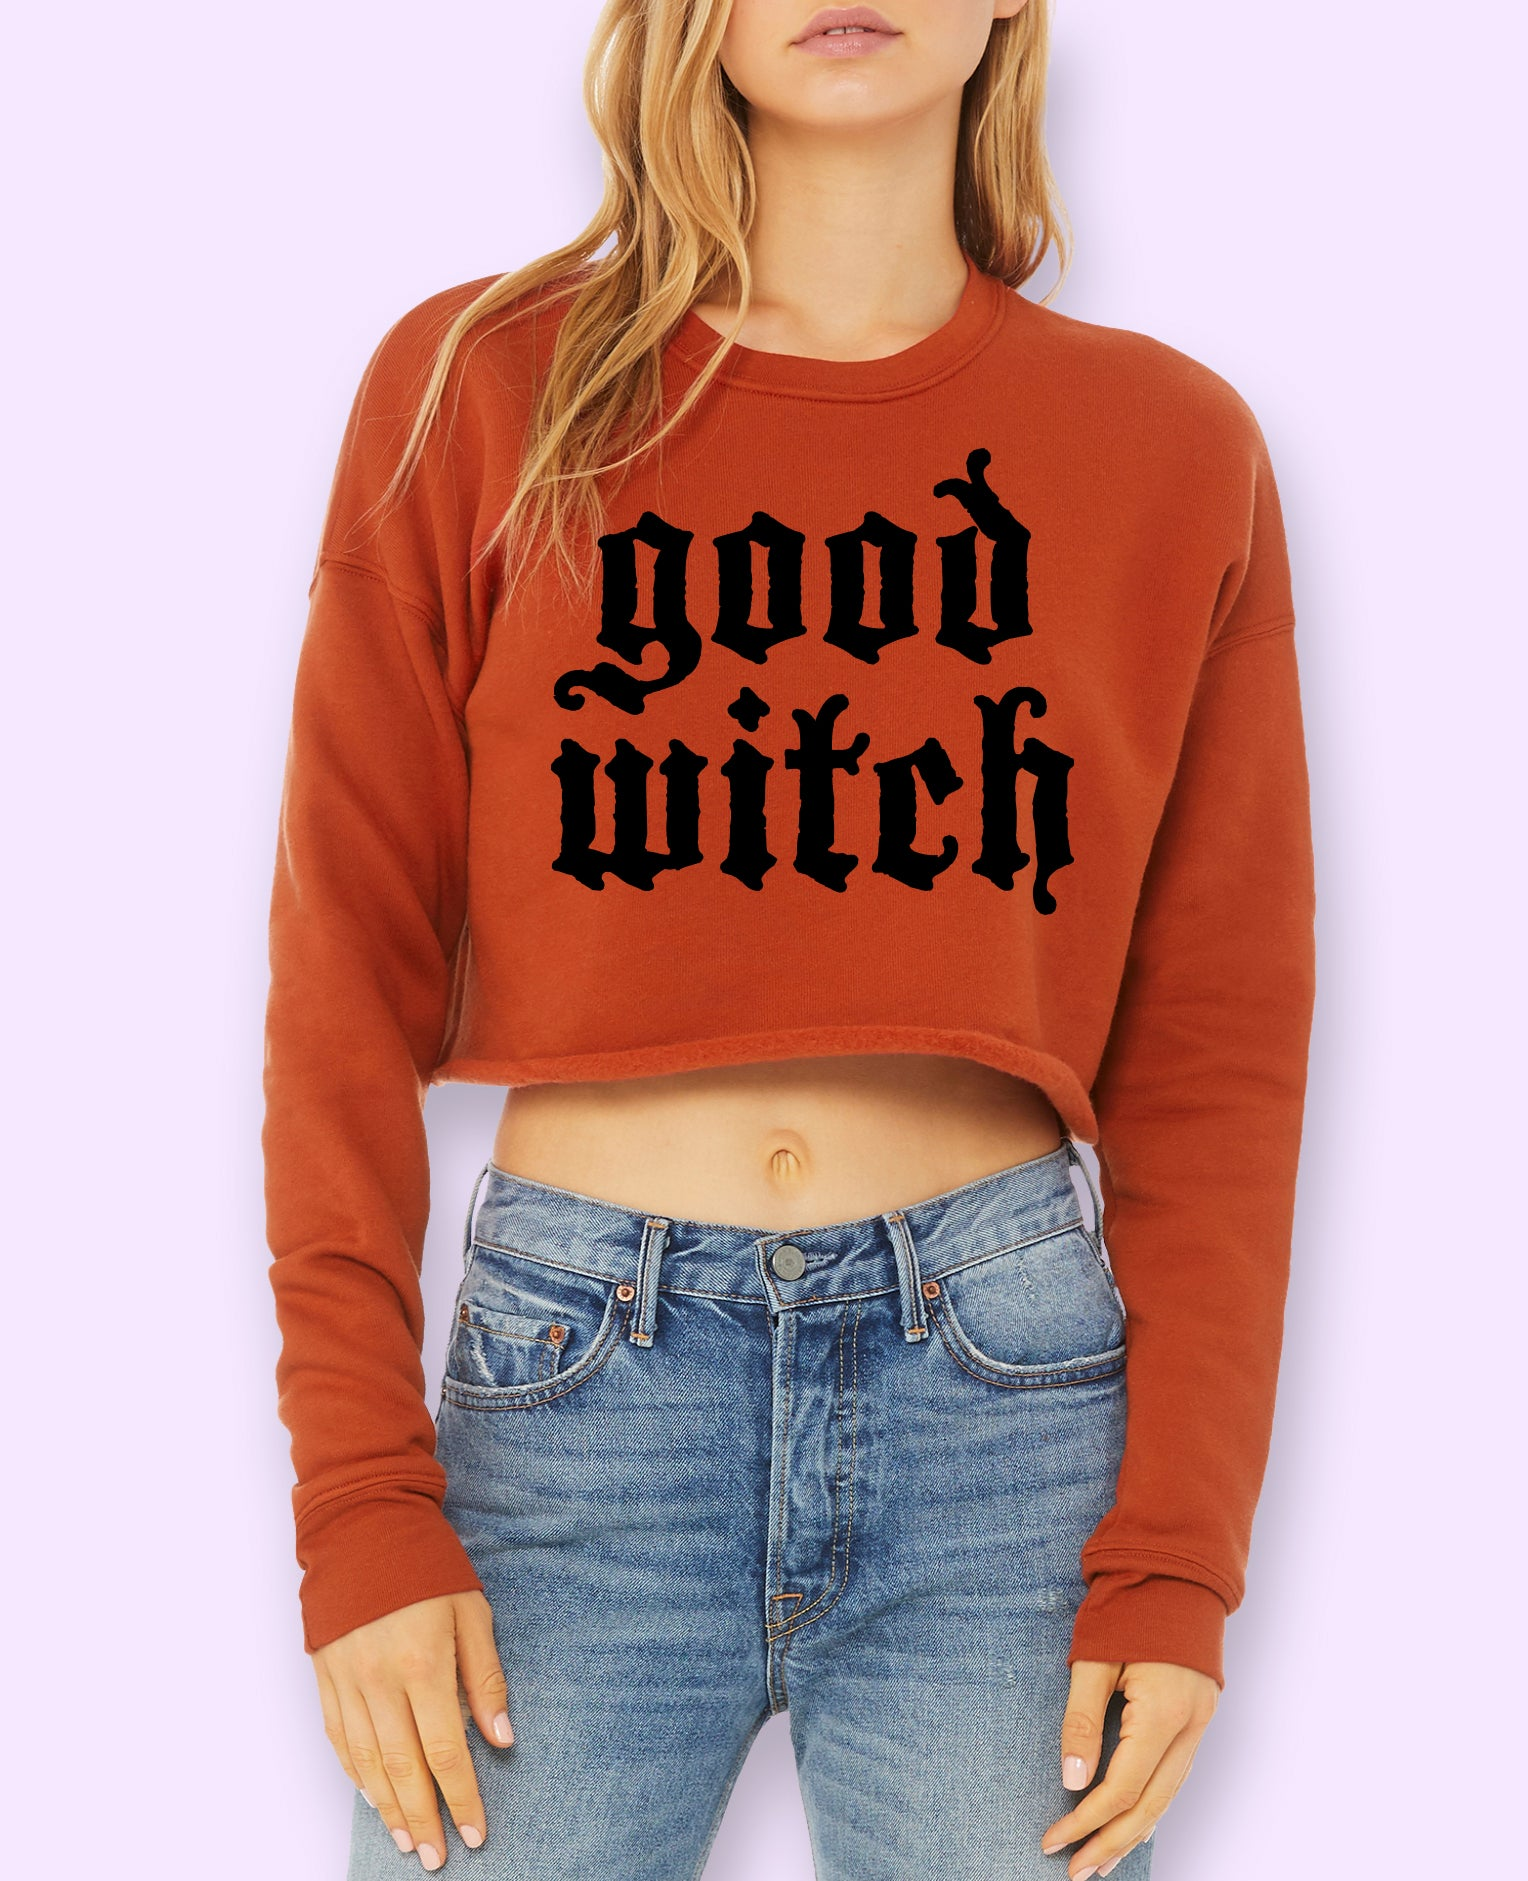 Good Witch Crop Sweatshirt